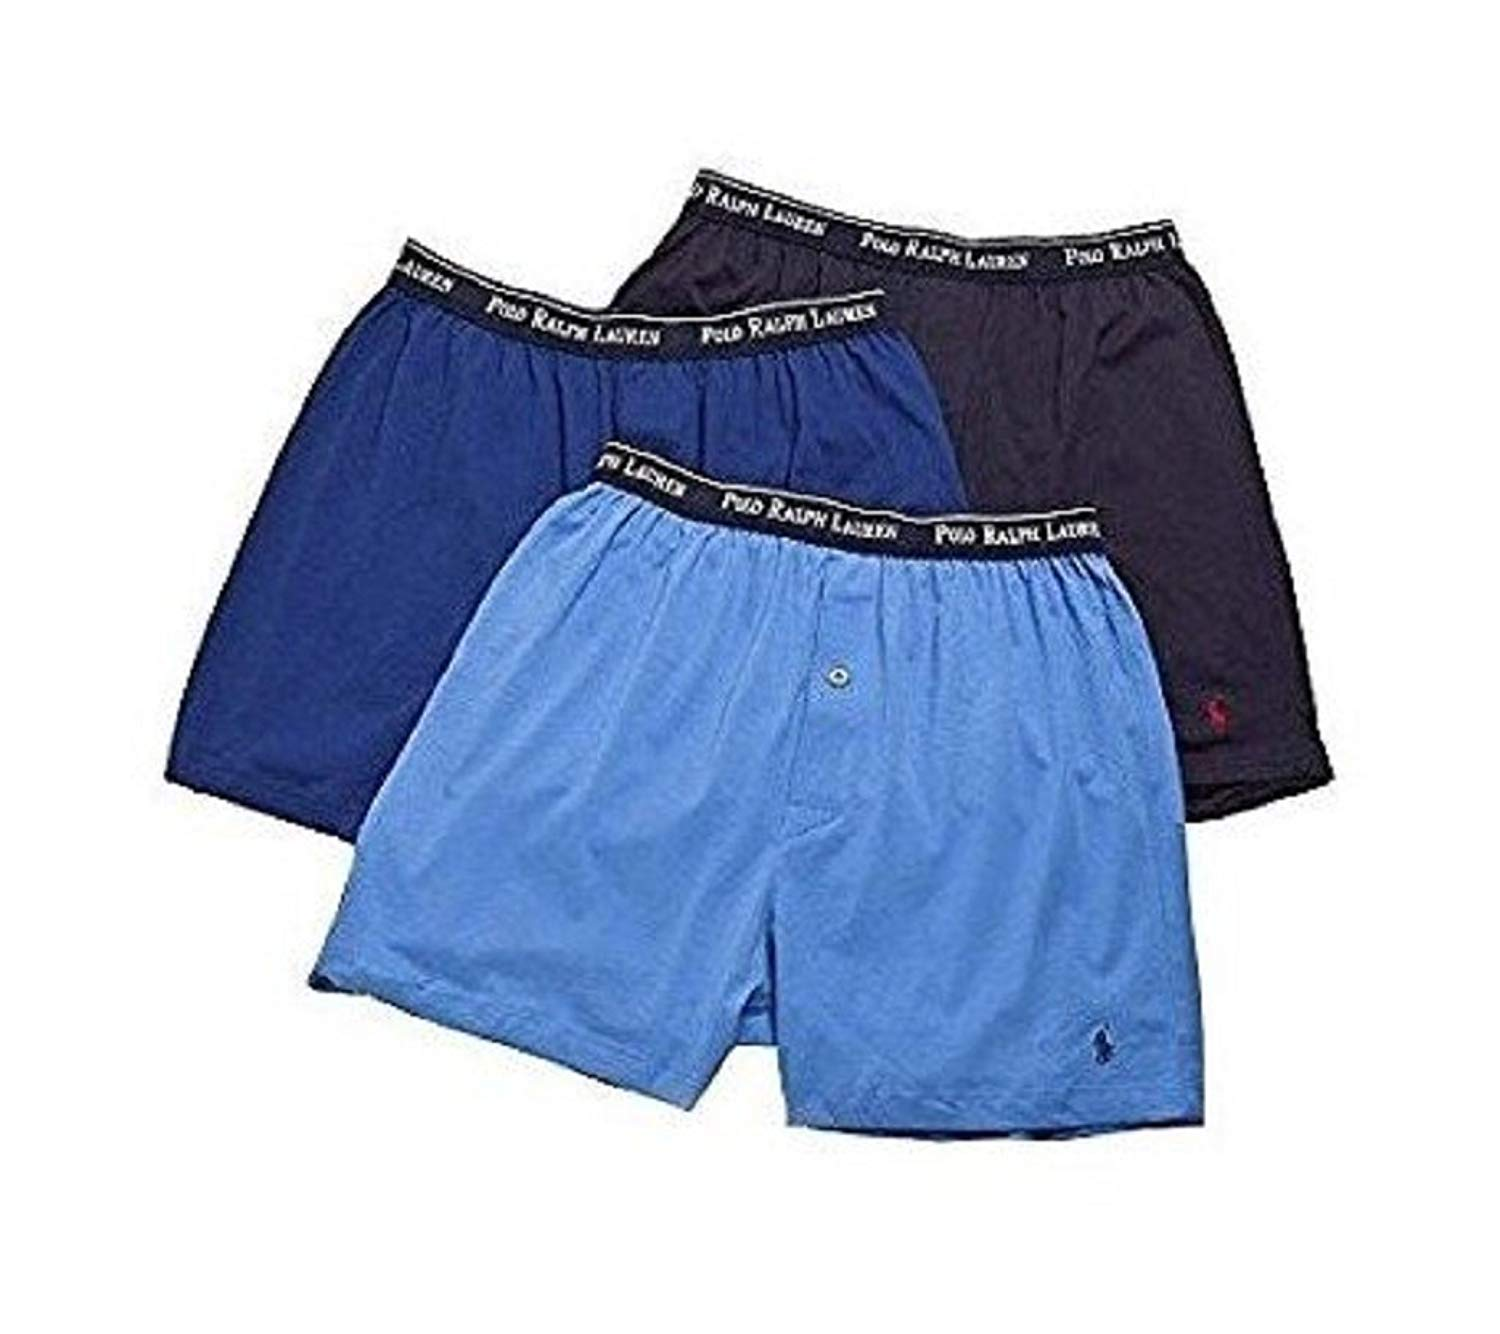 31e149ec2be2 Cheap Hathaway Boxers, find Hathaway Boxers deals on line at Alibaba.com